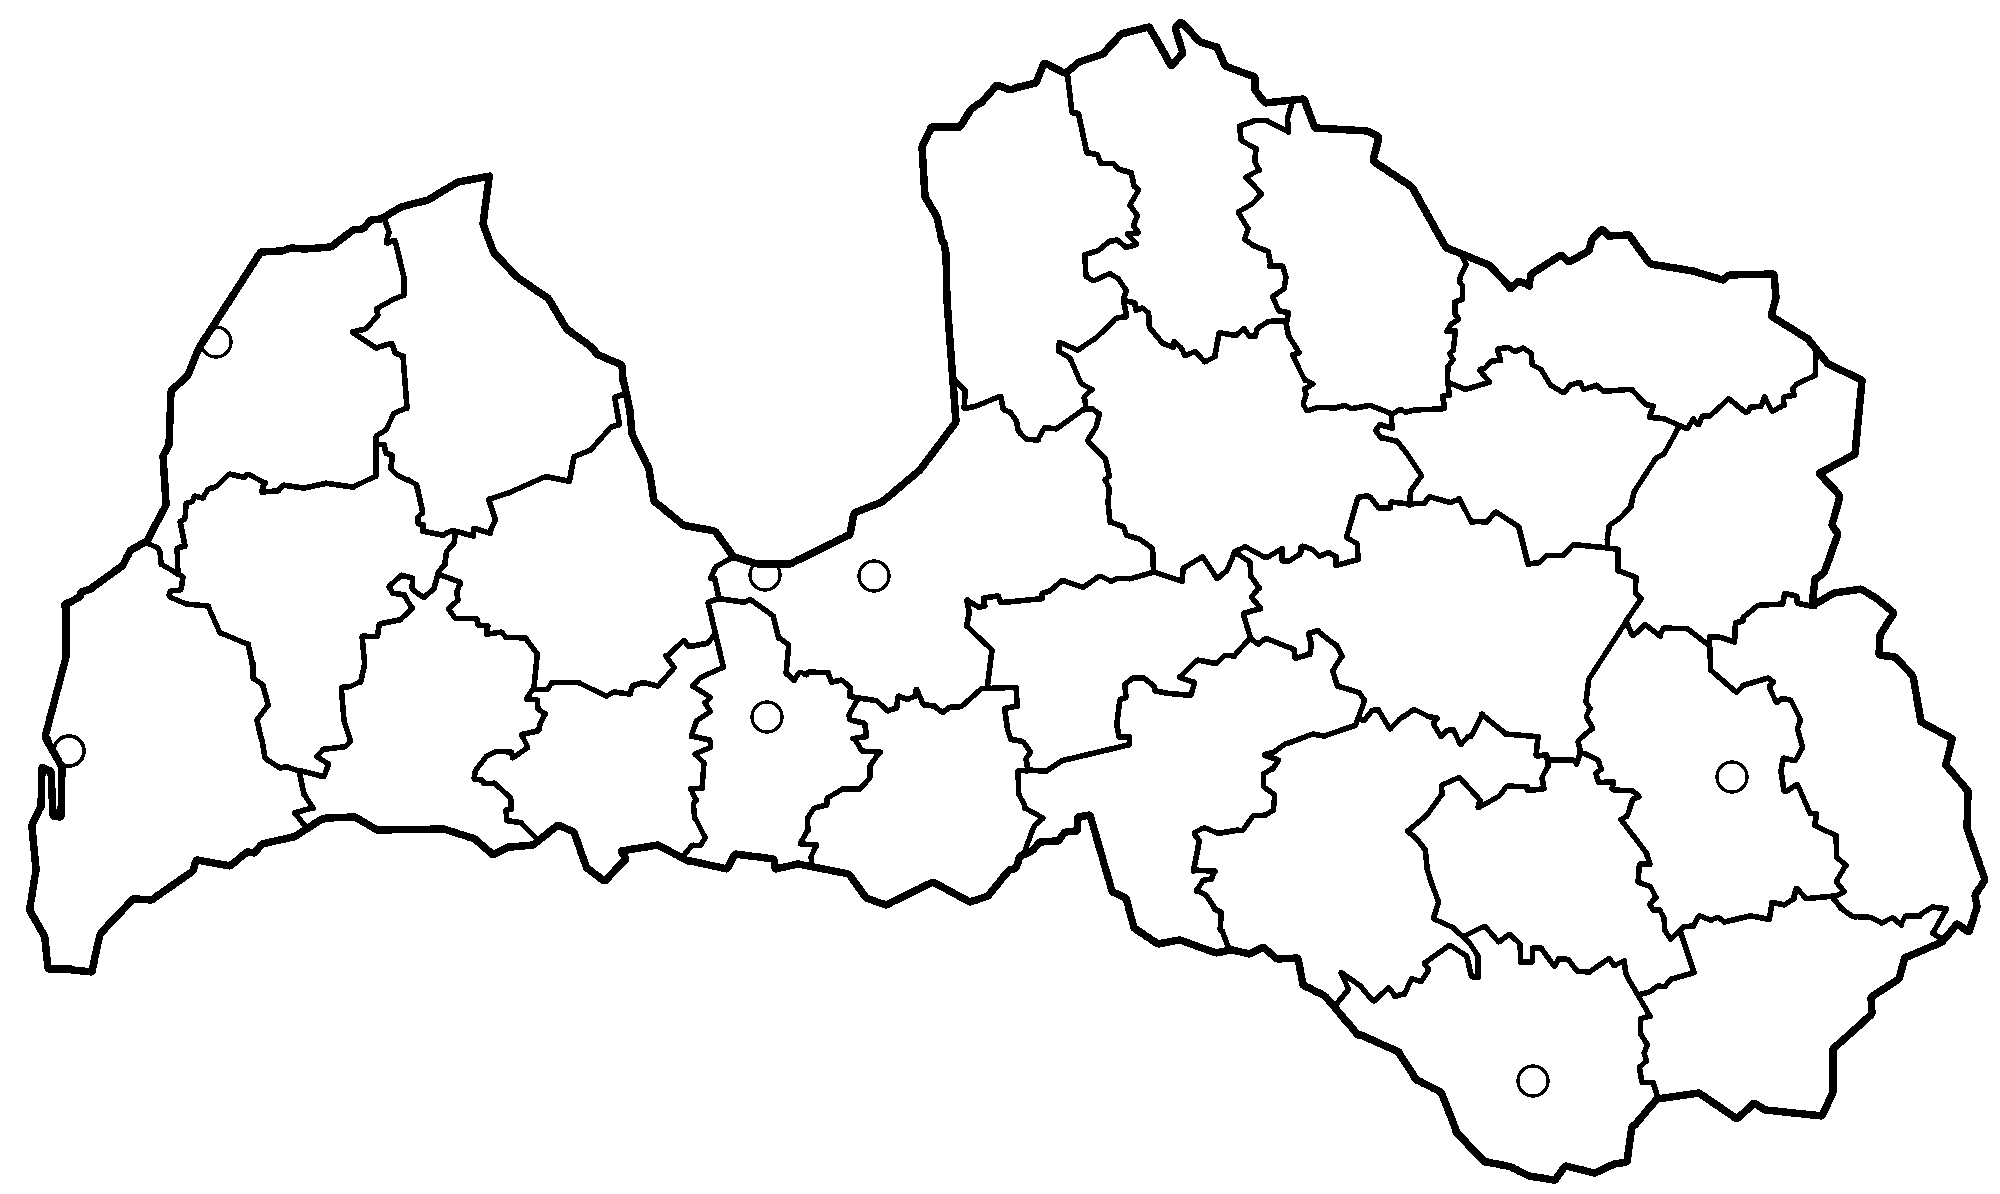 File:Latvia districts blank.png - Wikimedia Commons